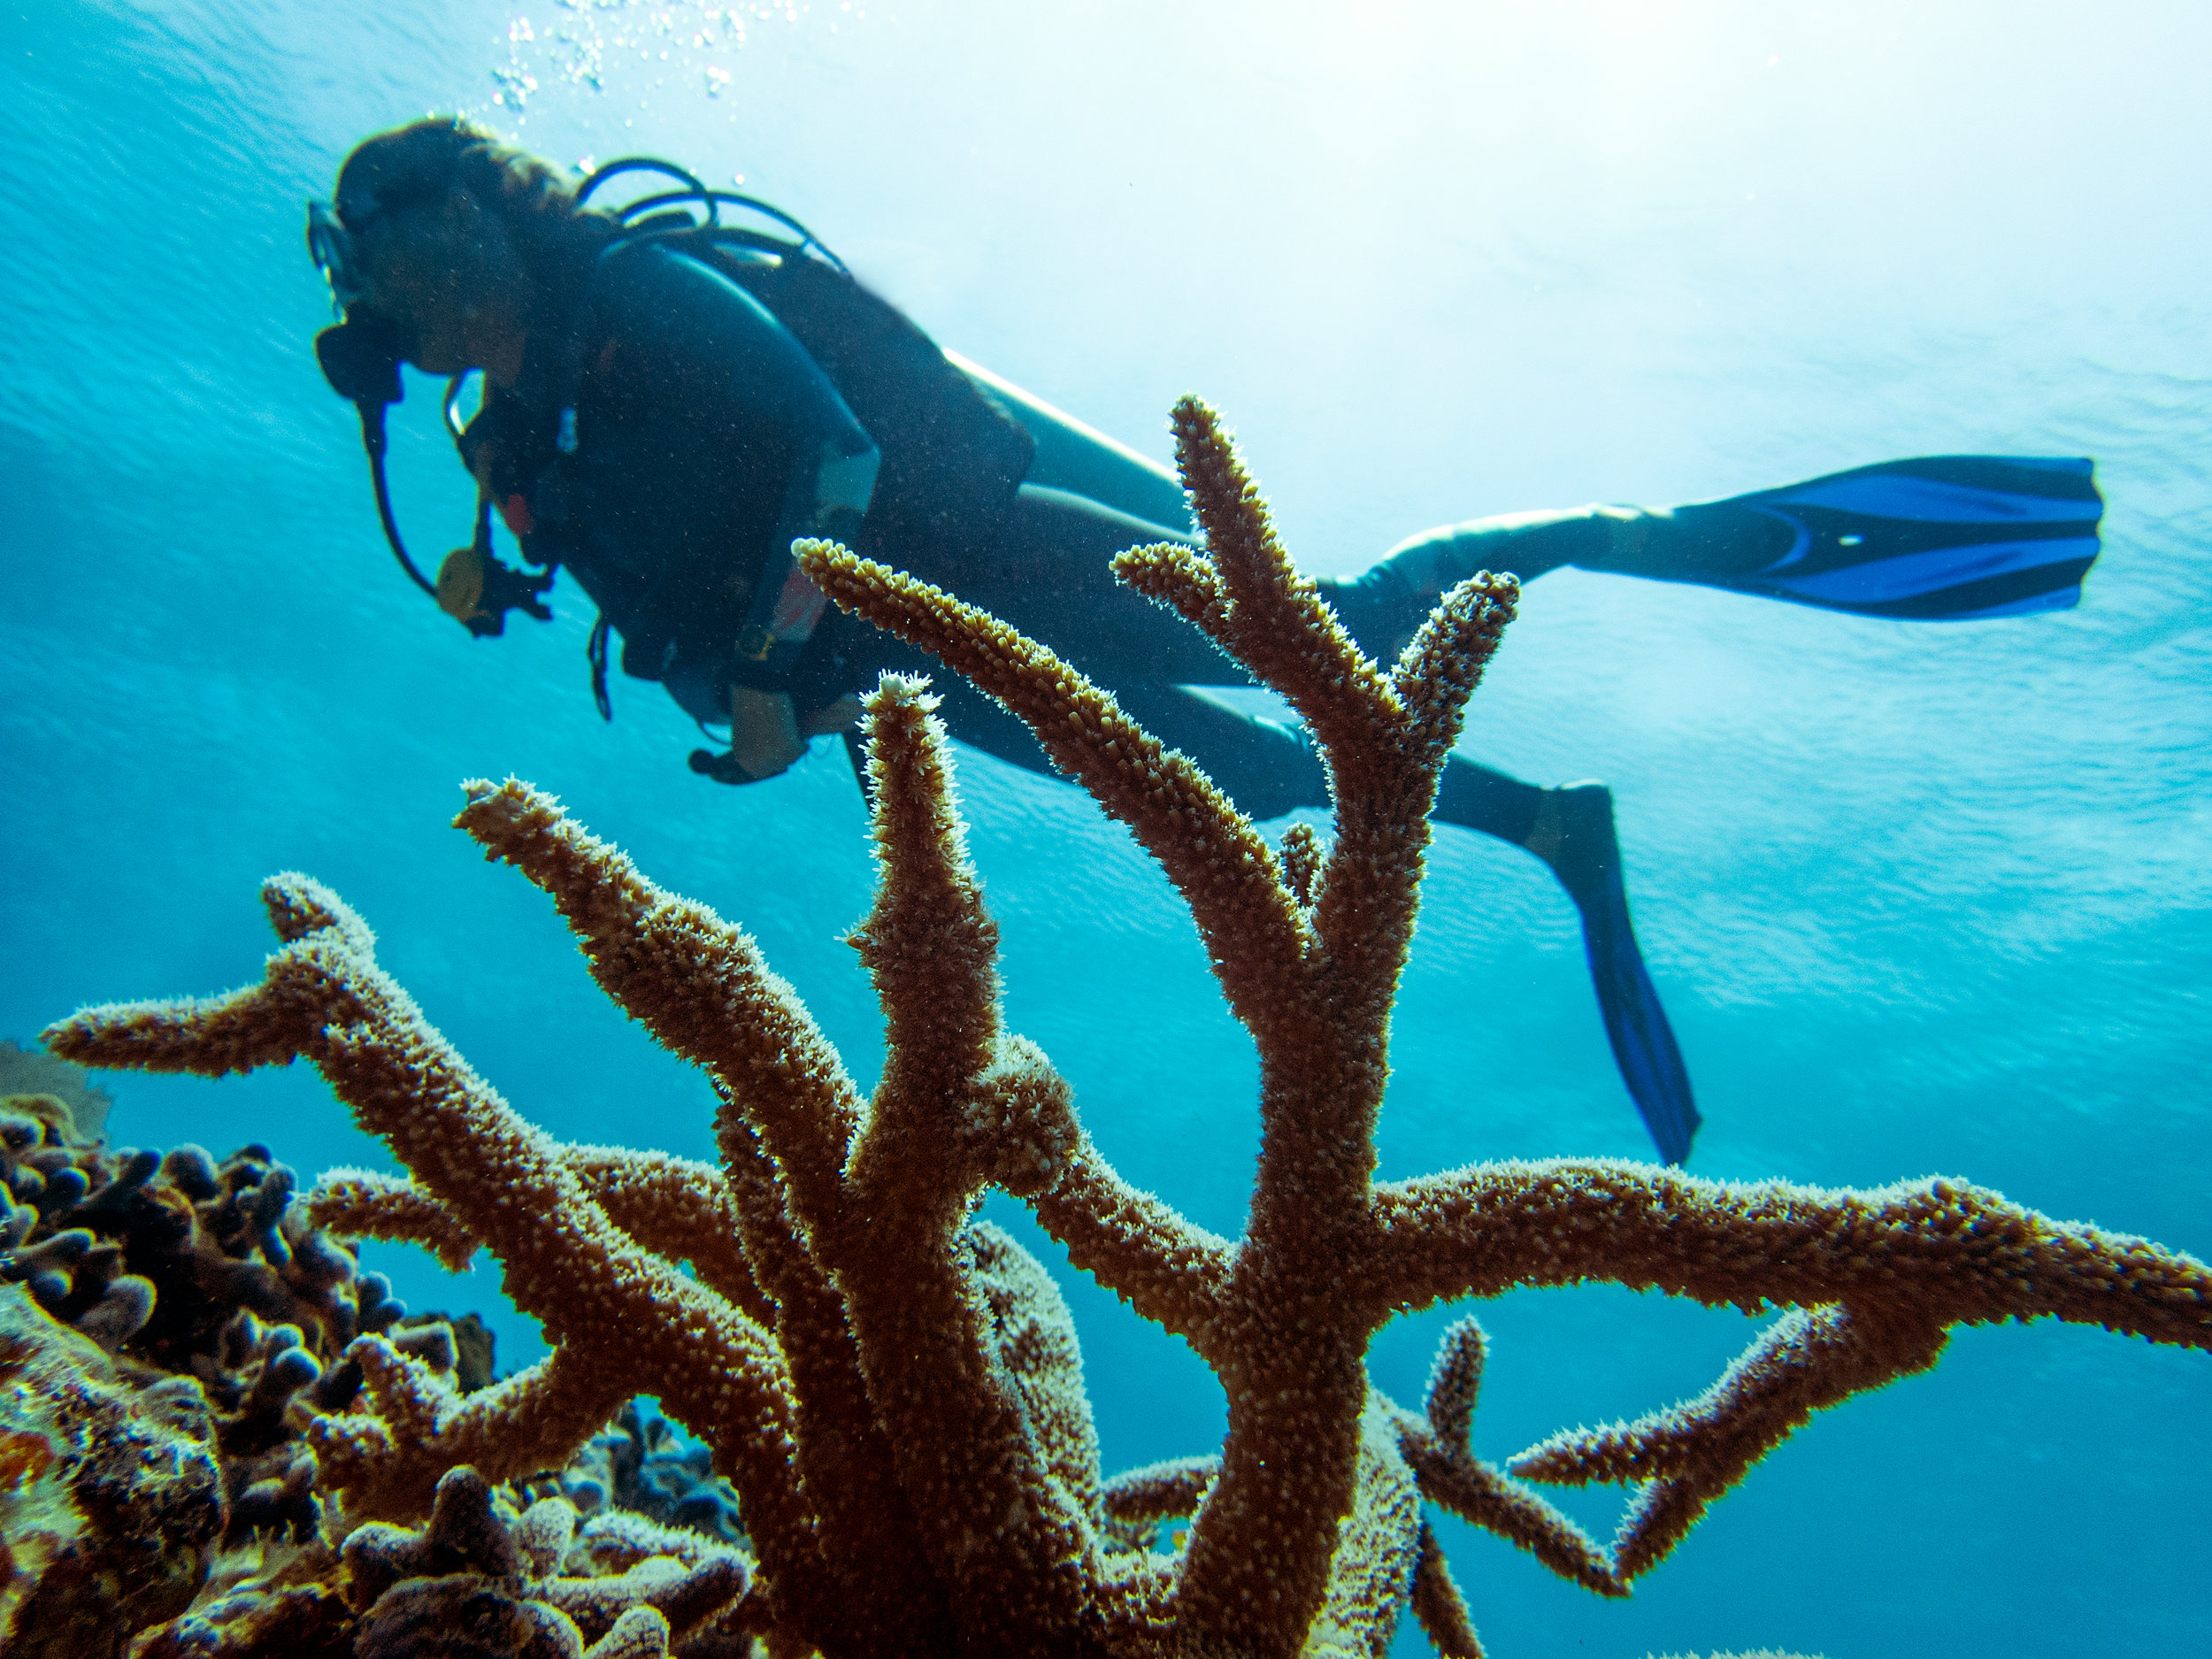 A diver swims above a colony of  Acropora cervicornis,  commonly known as staghorn coral, in Eleuthera, the Bahamas.